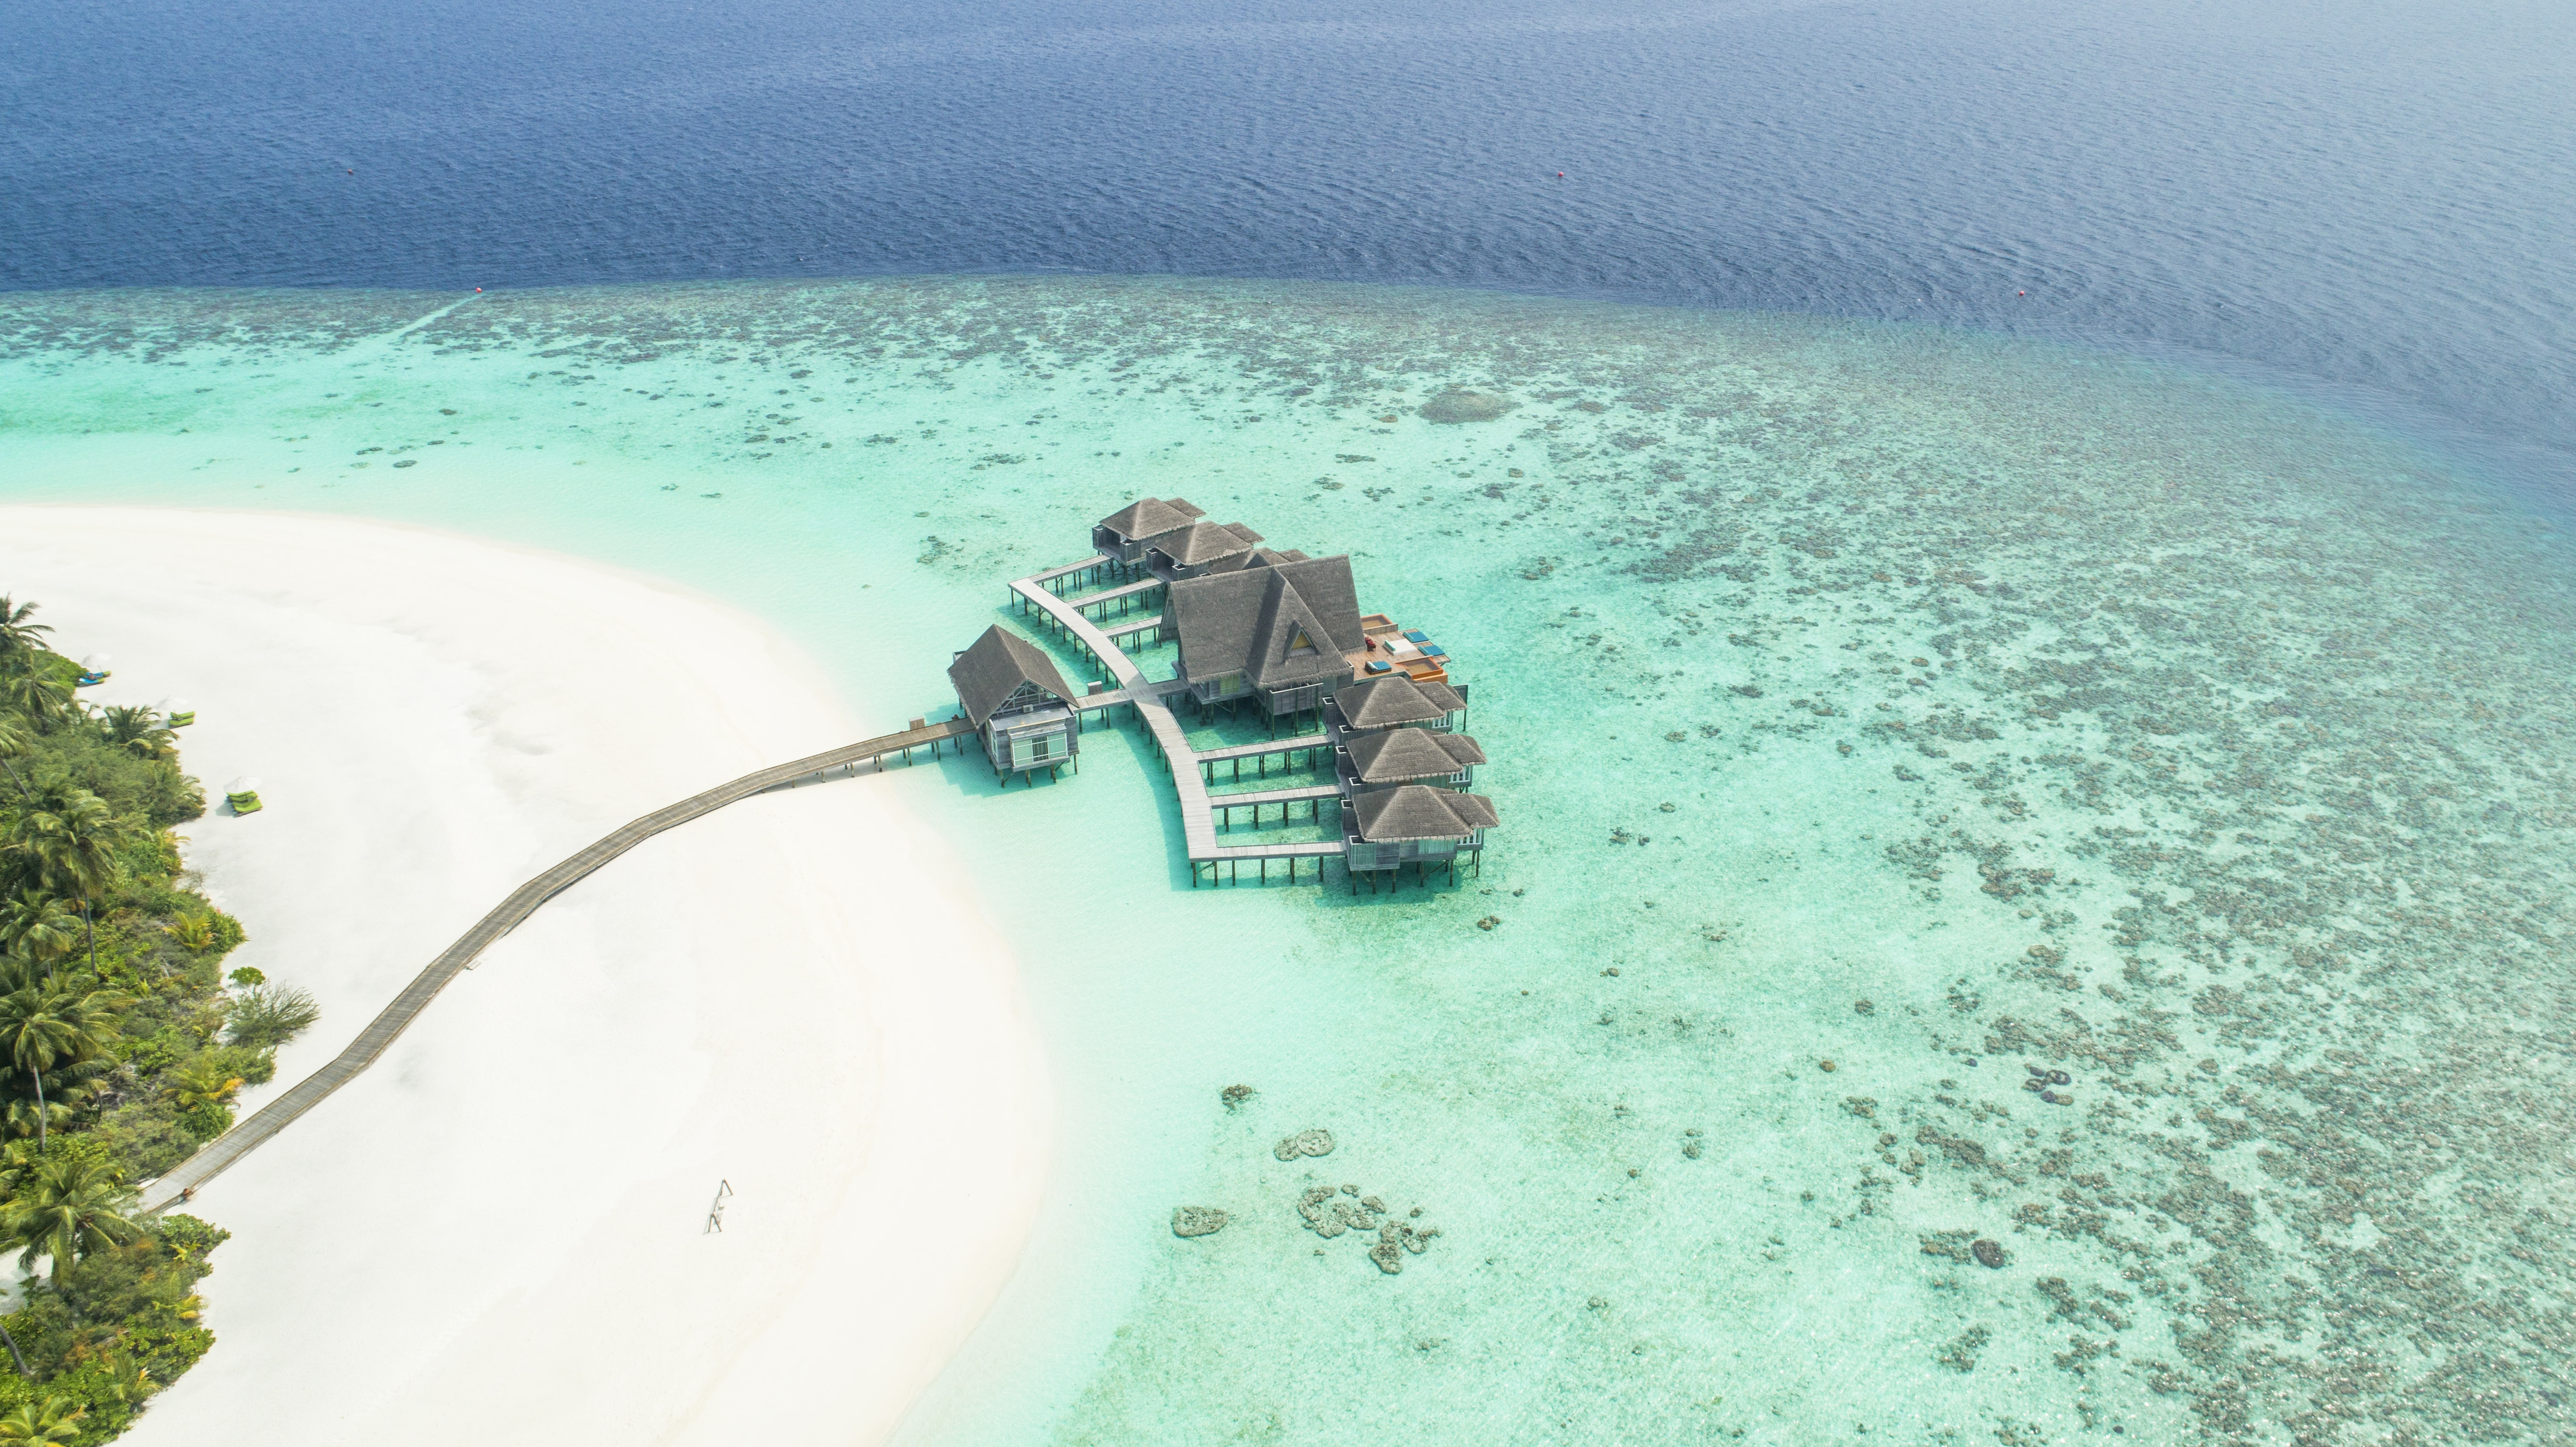 Stunning resort on a pristine island in the Maldives surrounded by coral reefs and ocean